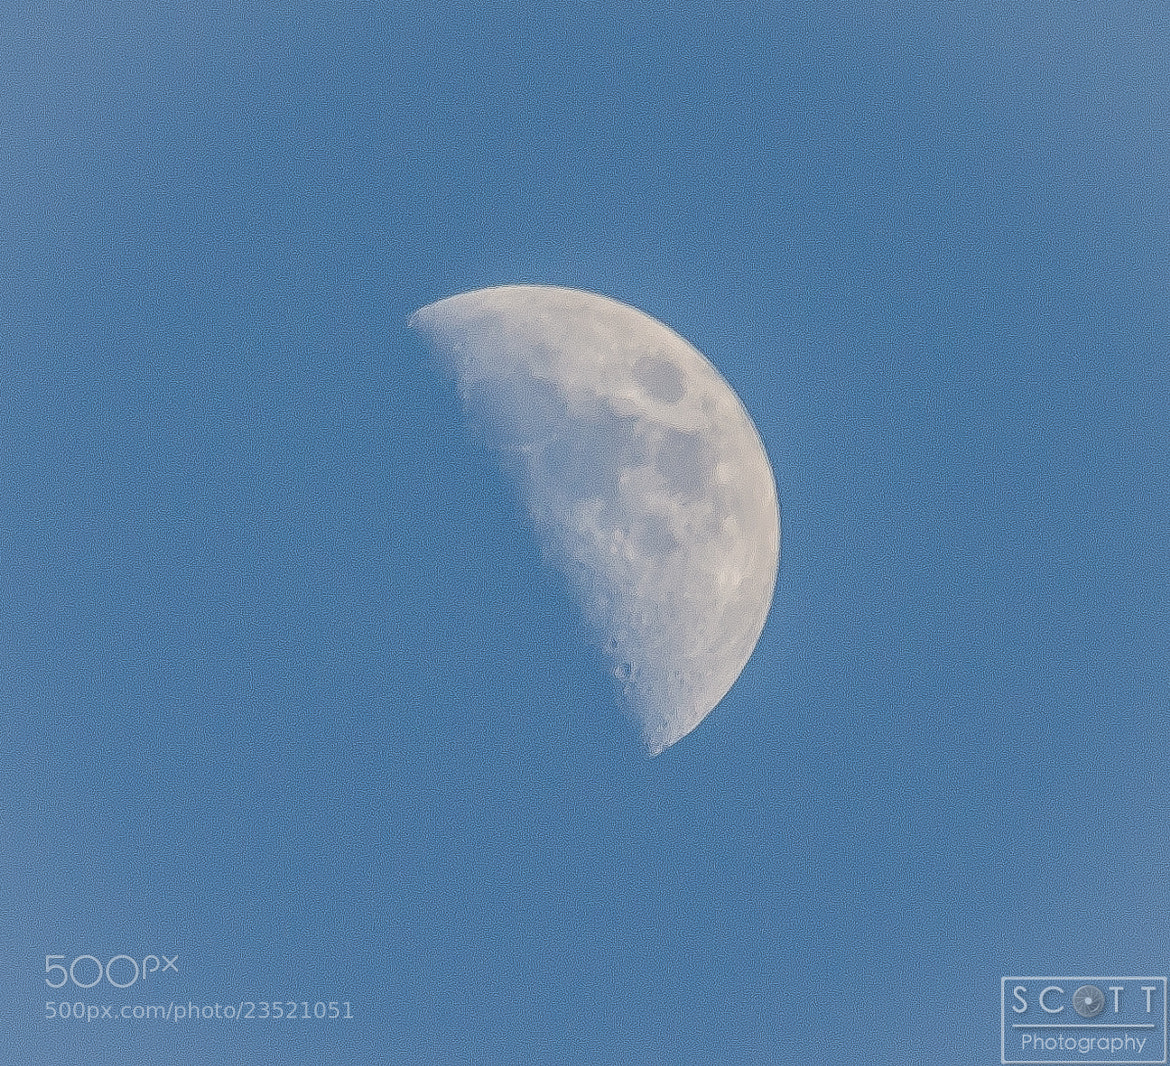 Photograph Moon by Rob Scott on 500px